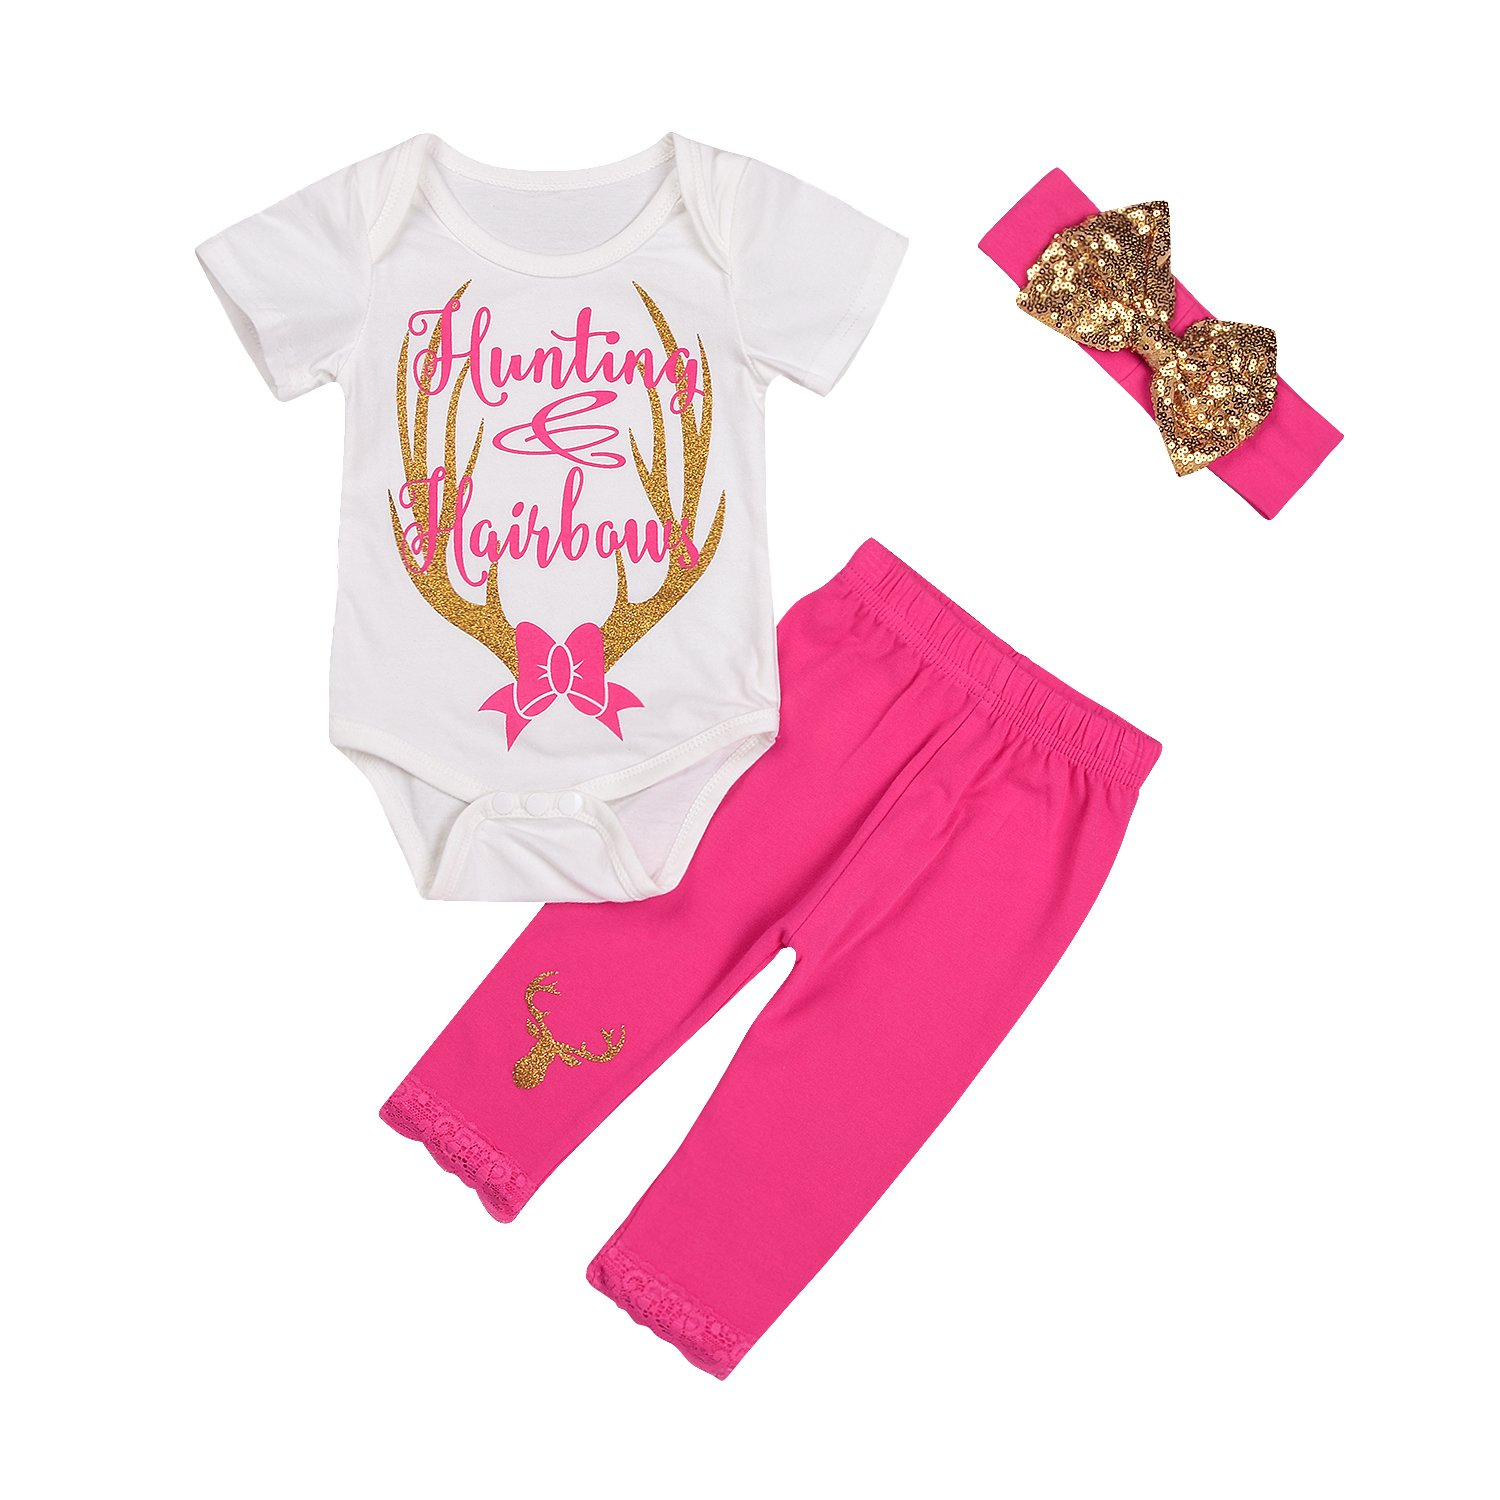 Imcute Baby Girls Deer Print White Romper+Long Pants+Headband 3Pcs Outfit Clothes Set